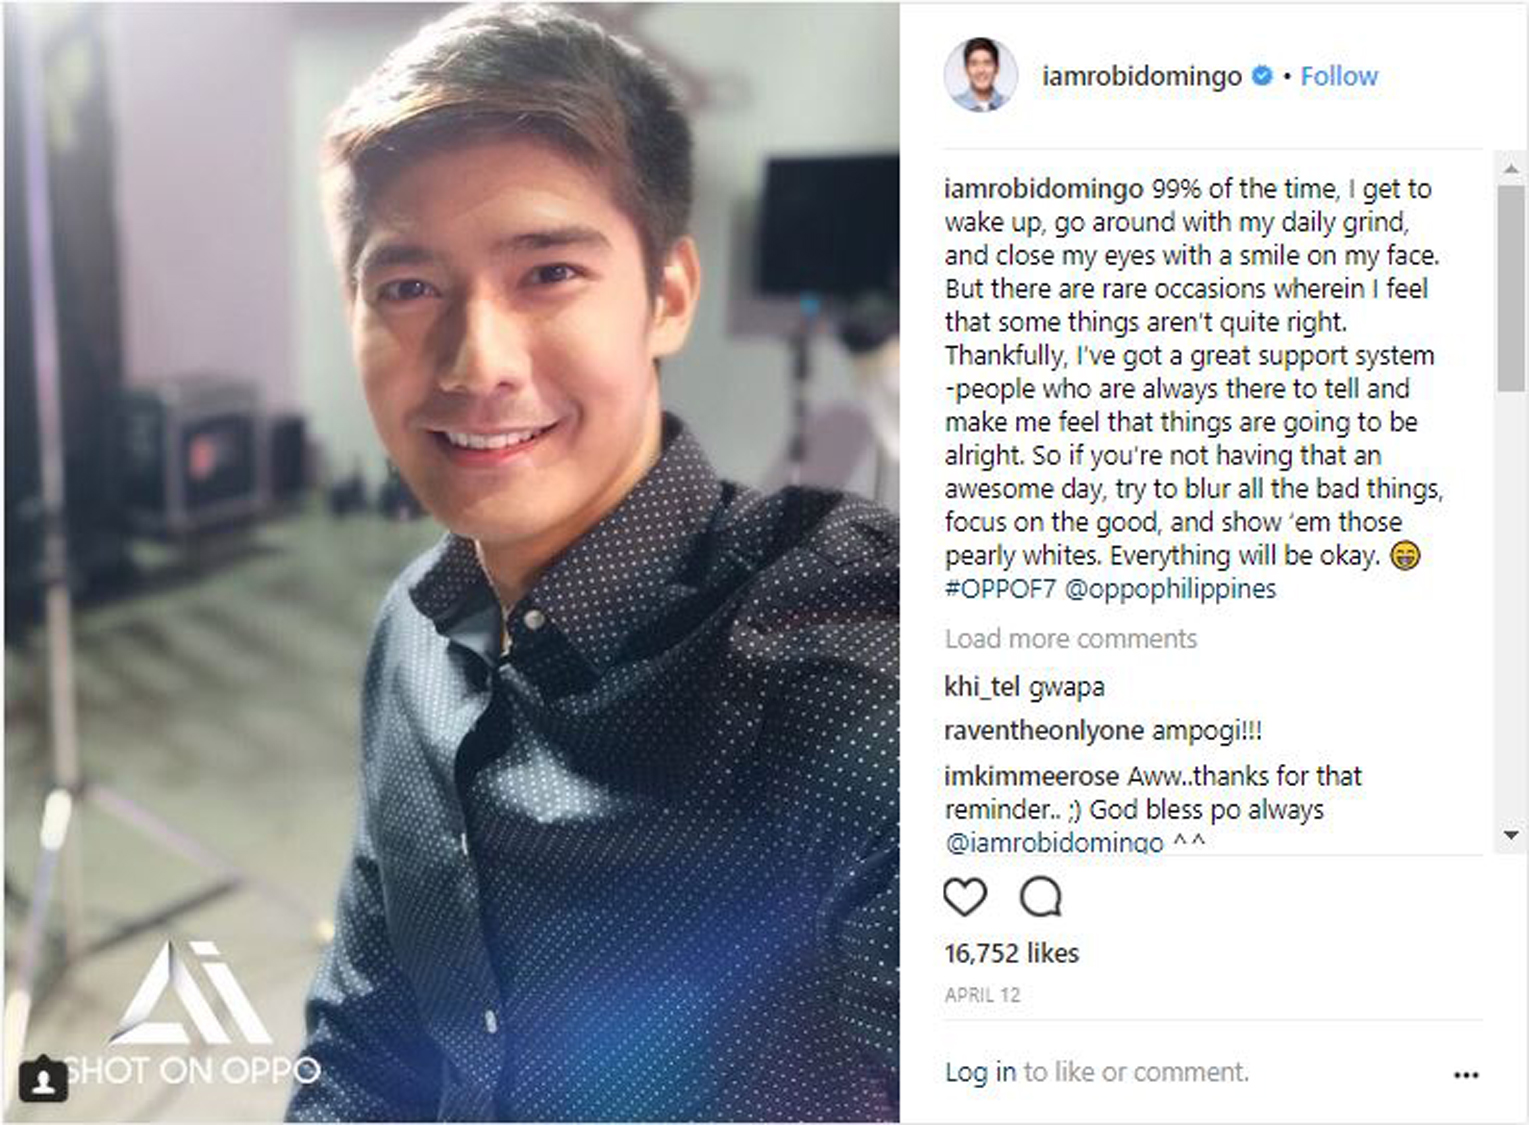 Look Inspiring Celebrities Open Up About Online Bashing Daia Softergent Violet Tv Personality Robi Domingo Takes On A More General Stance Overall Positivity With His Uplifting Message Conquering Each Dayincluding